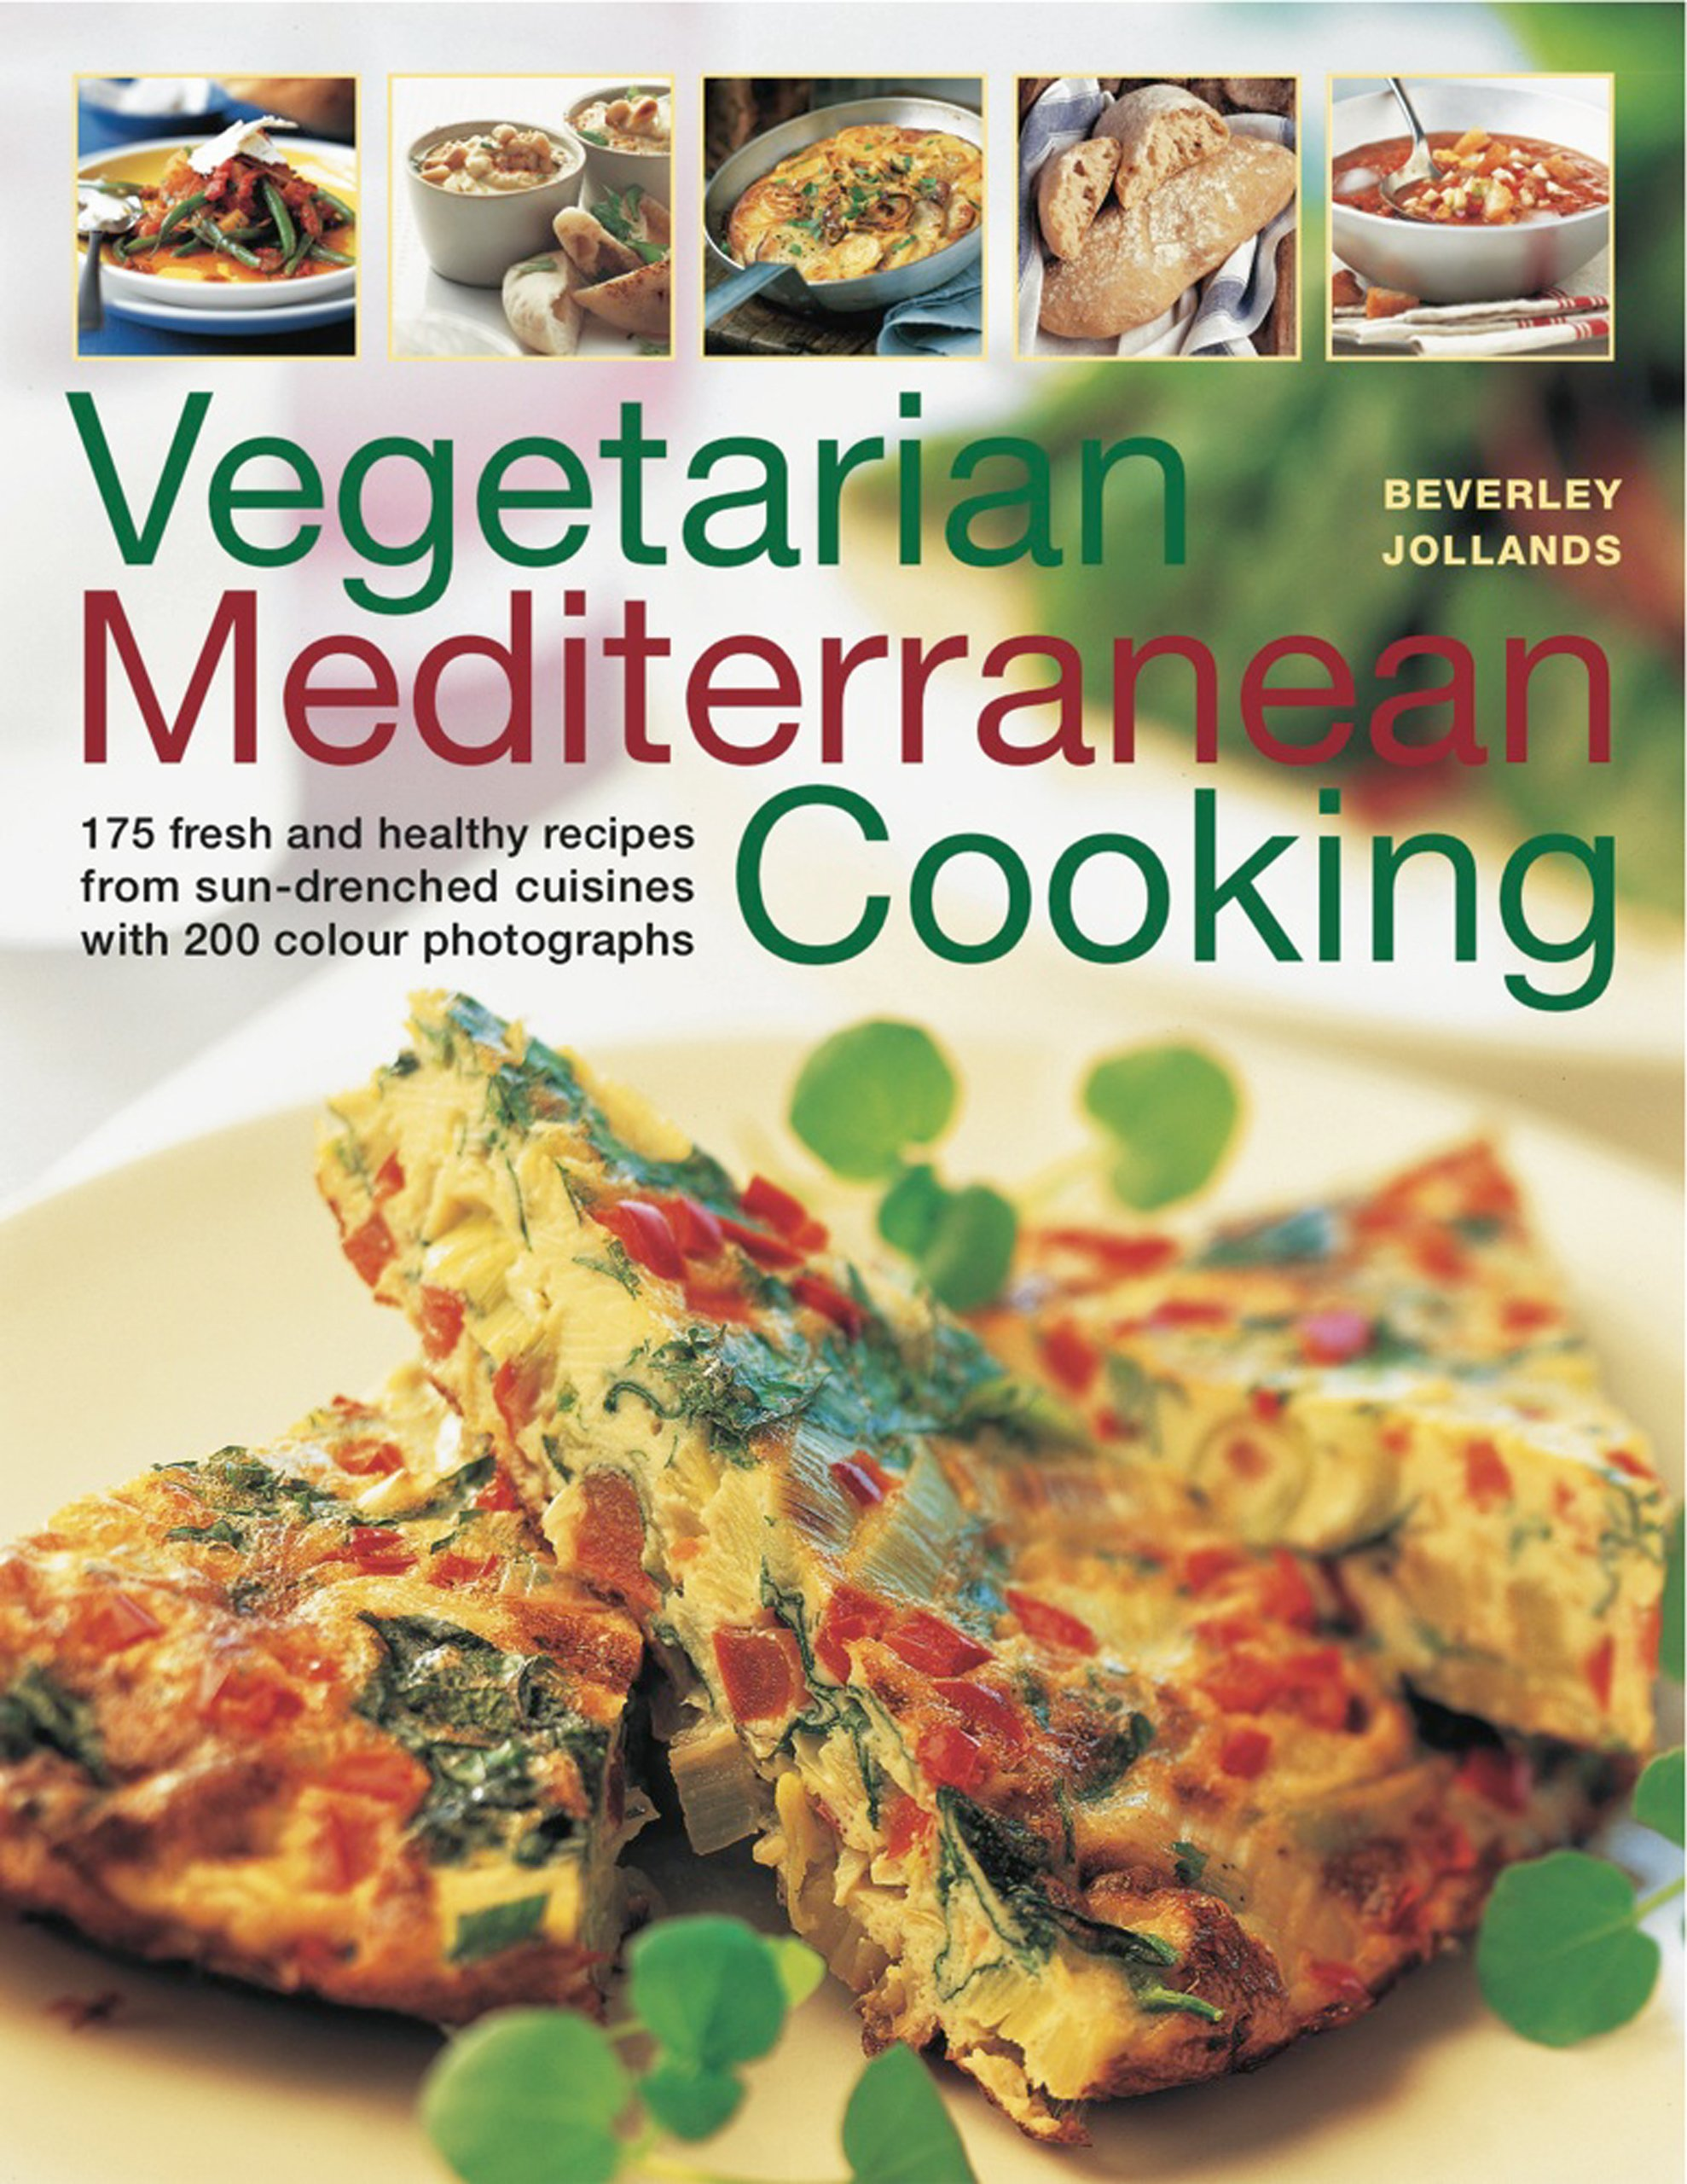 Download Vegetarian Mediterranean Cooking: 180 fresh and healthy recipes from sun-drenched cuisines with 200 colour photographs ebook